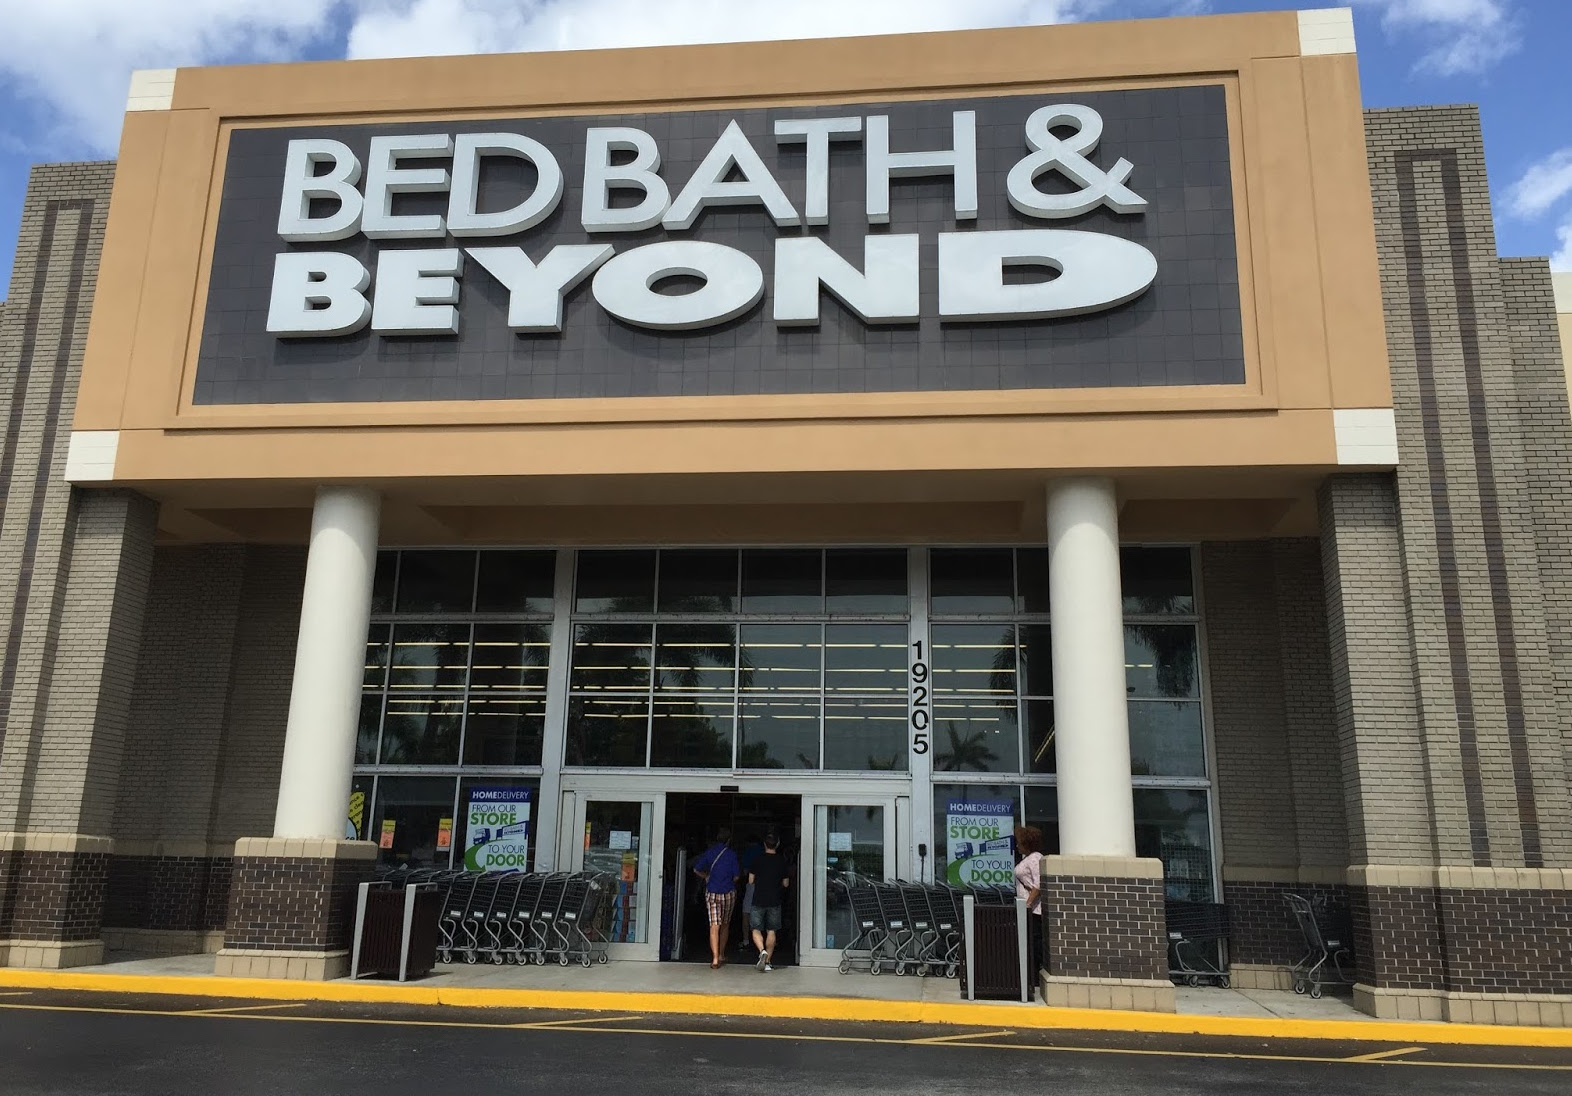 Apr 18,  · But Bed Bath & Beyond remained upbeat about its future in its recent earnings report. It even boosted its dividend payment to shareholders, saying .